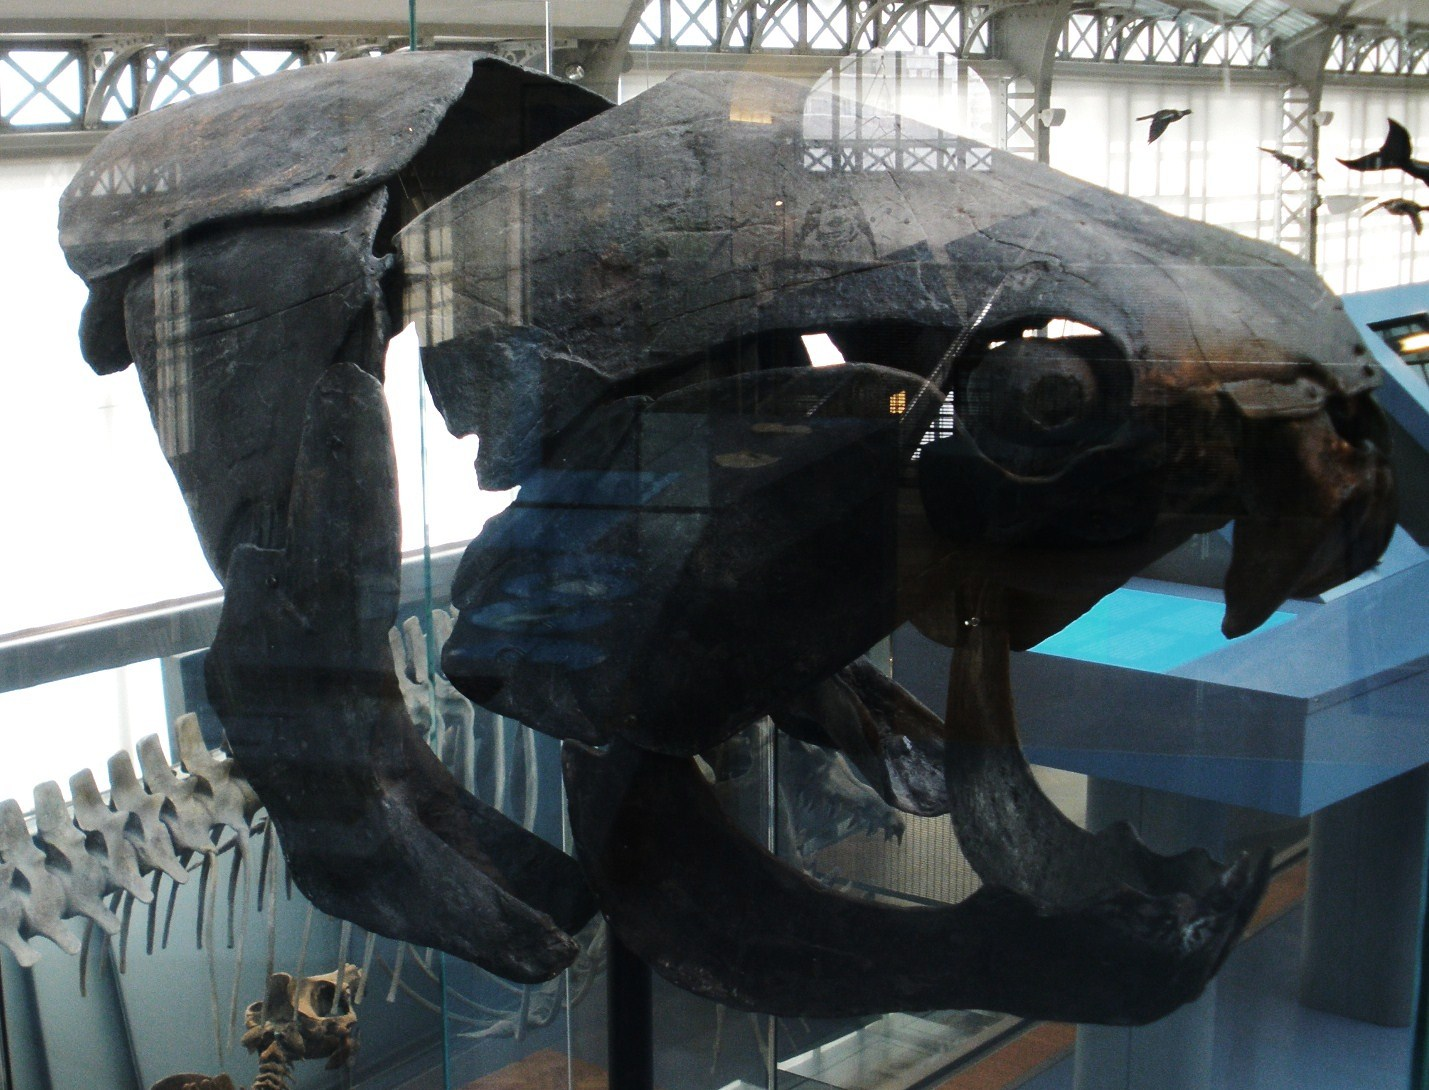 Dunkleosteus Natural History Museum